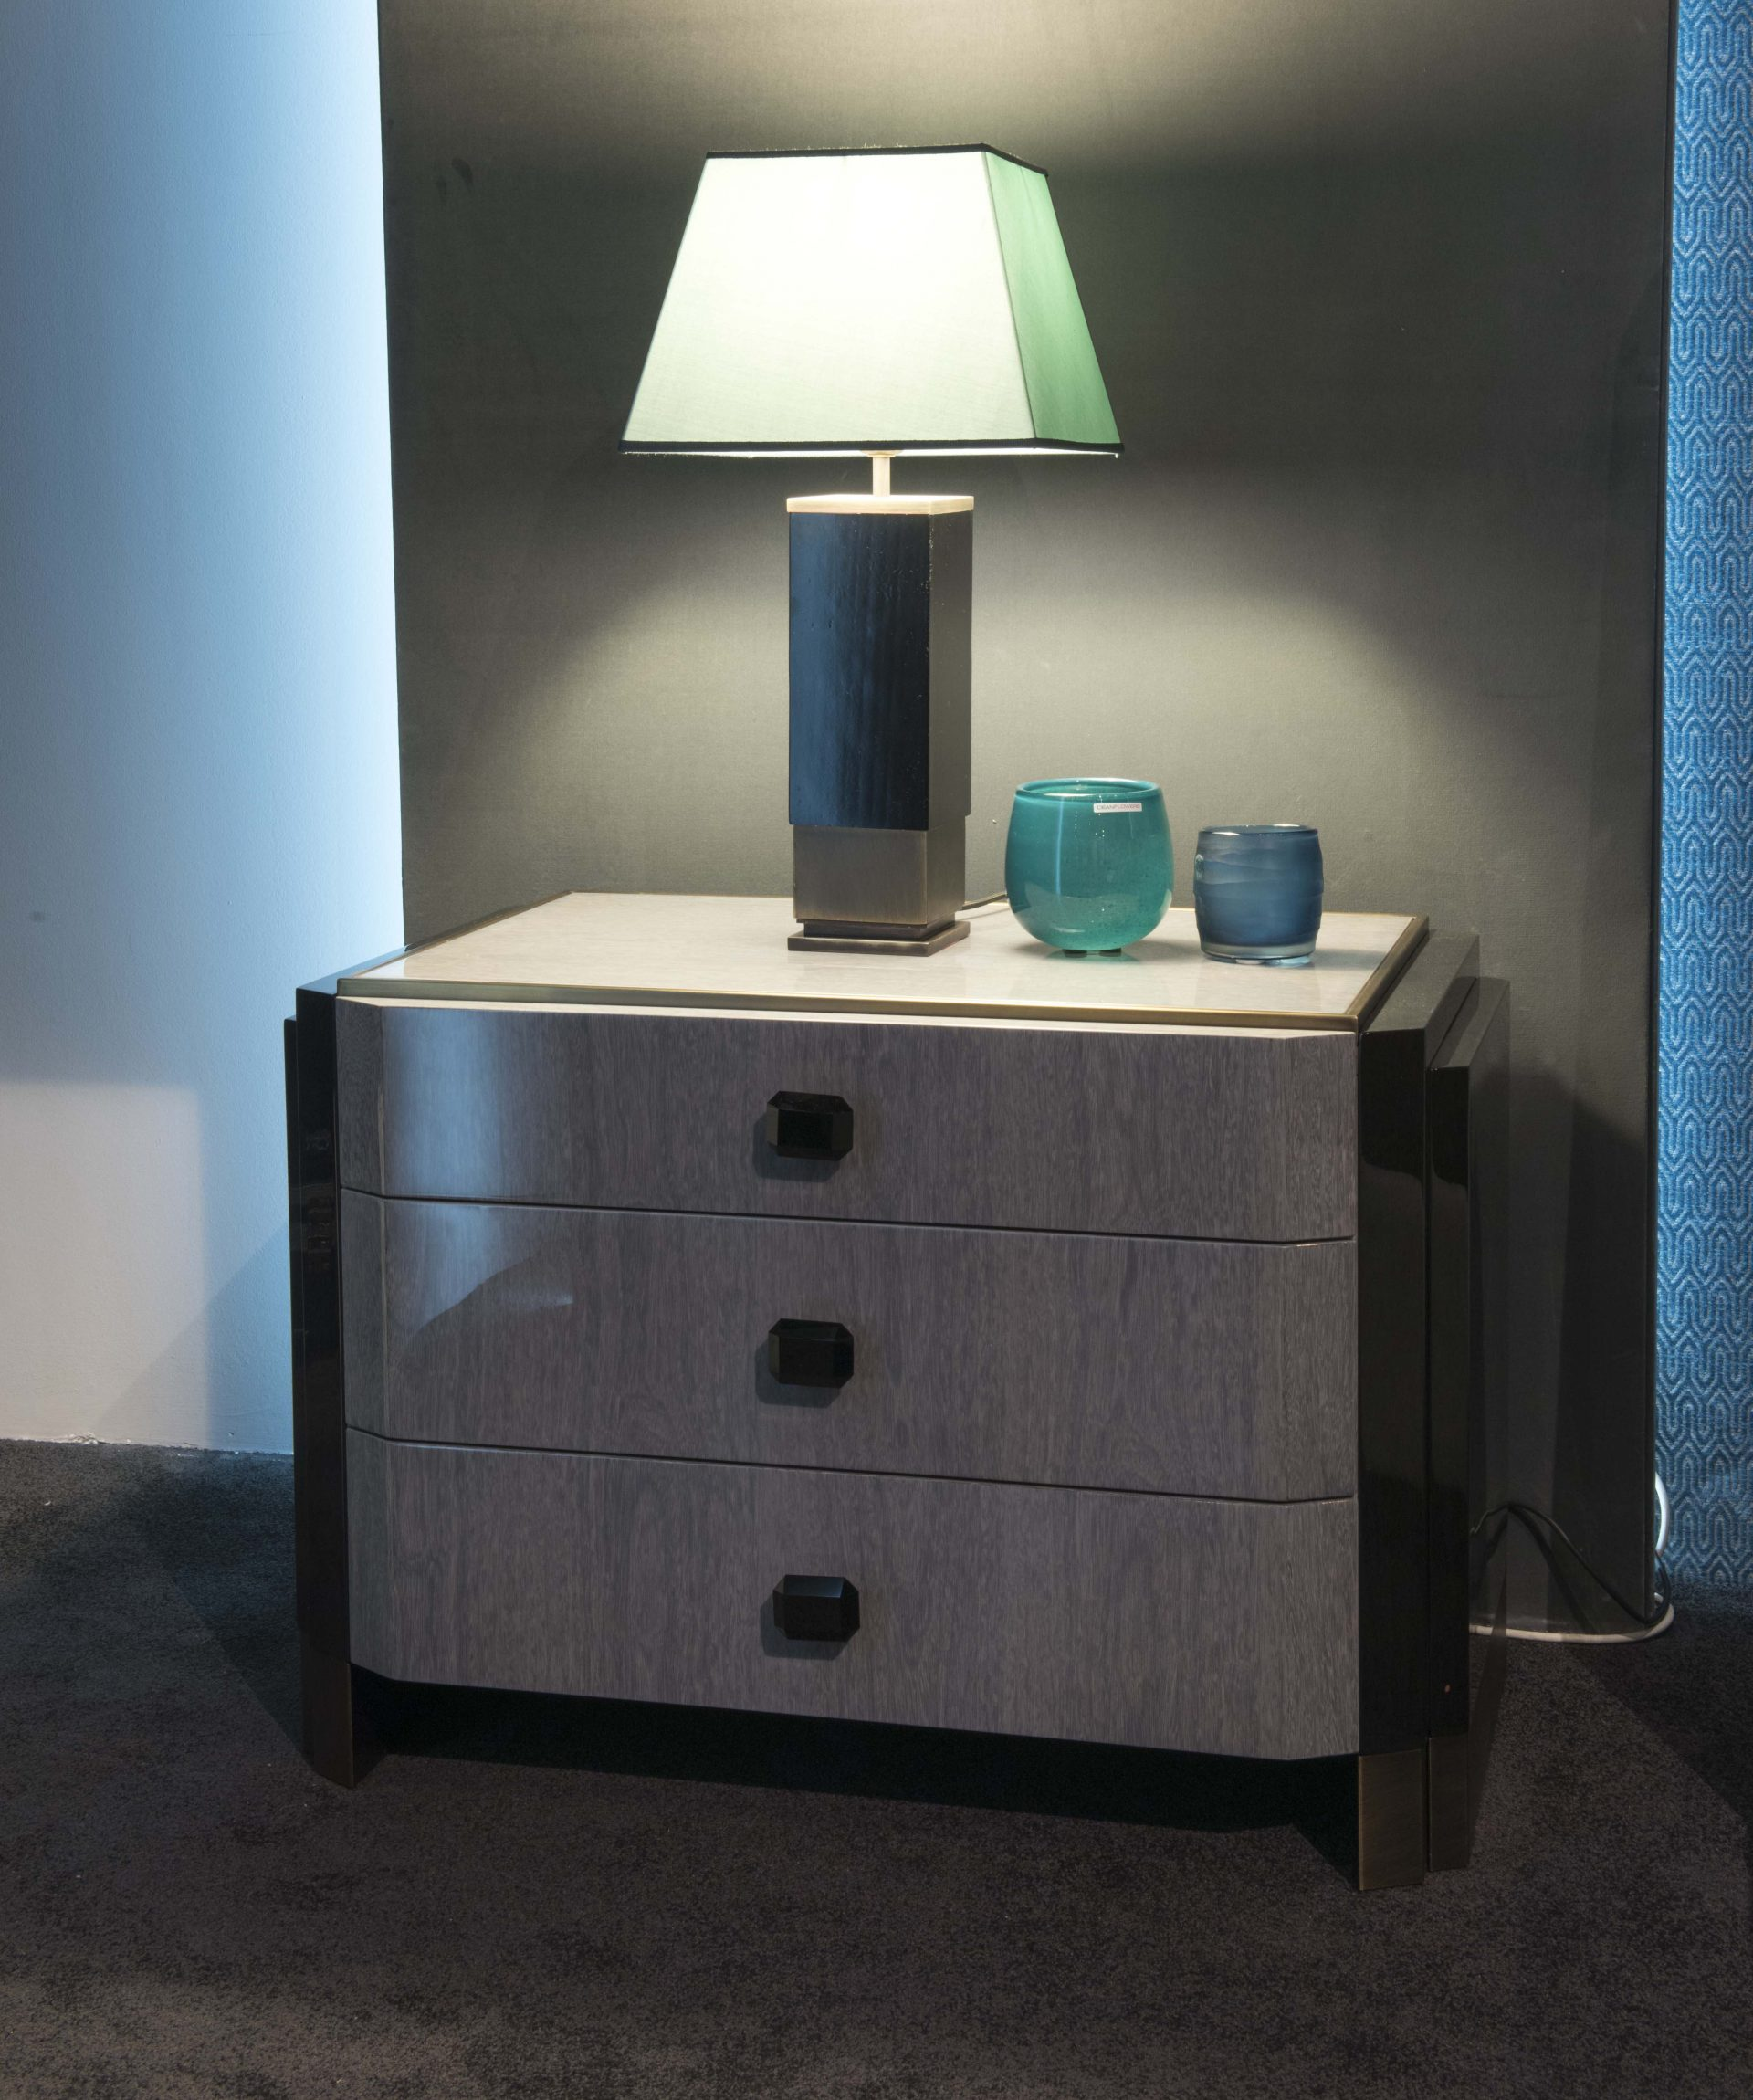 Be One Bedside Table